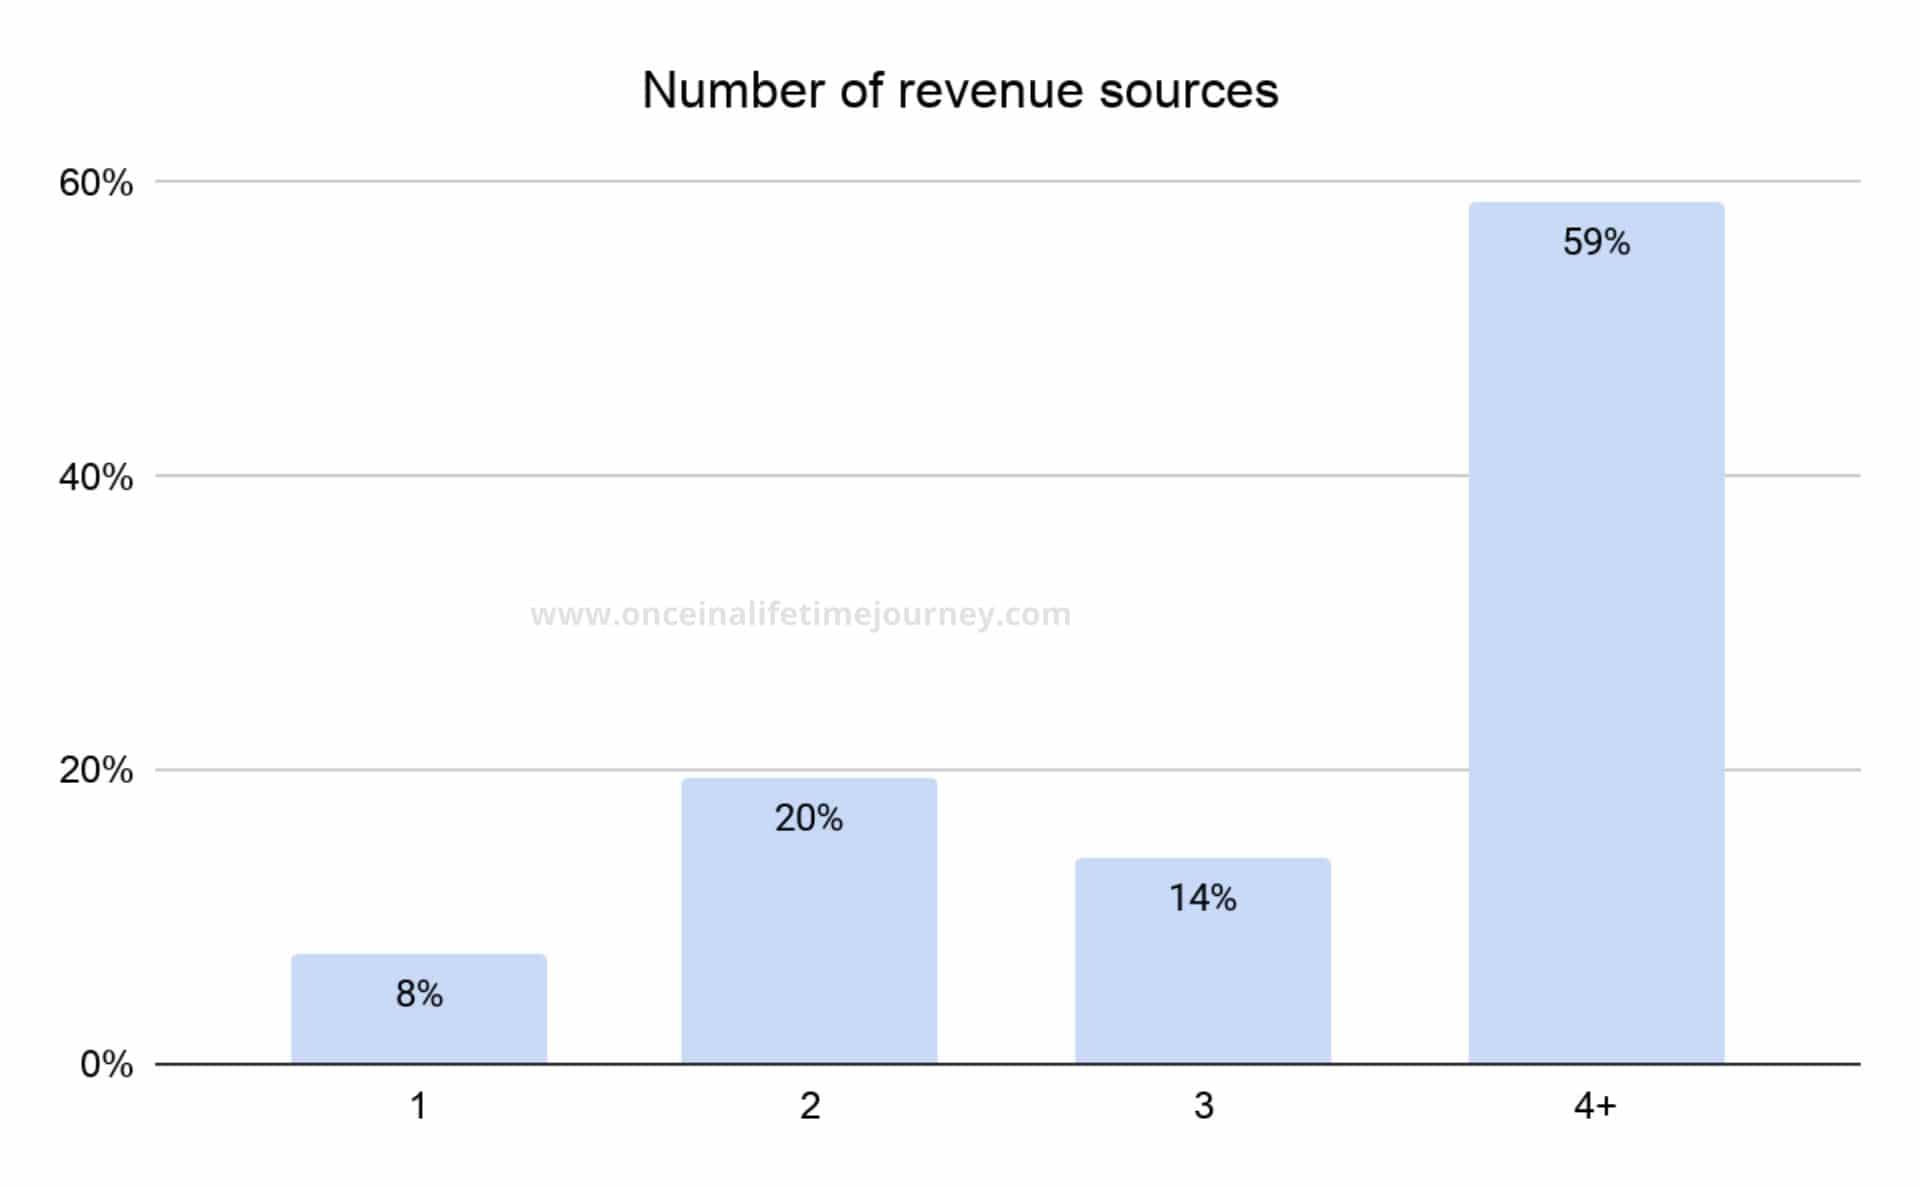 Number of Revenue Sources